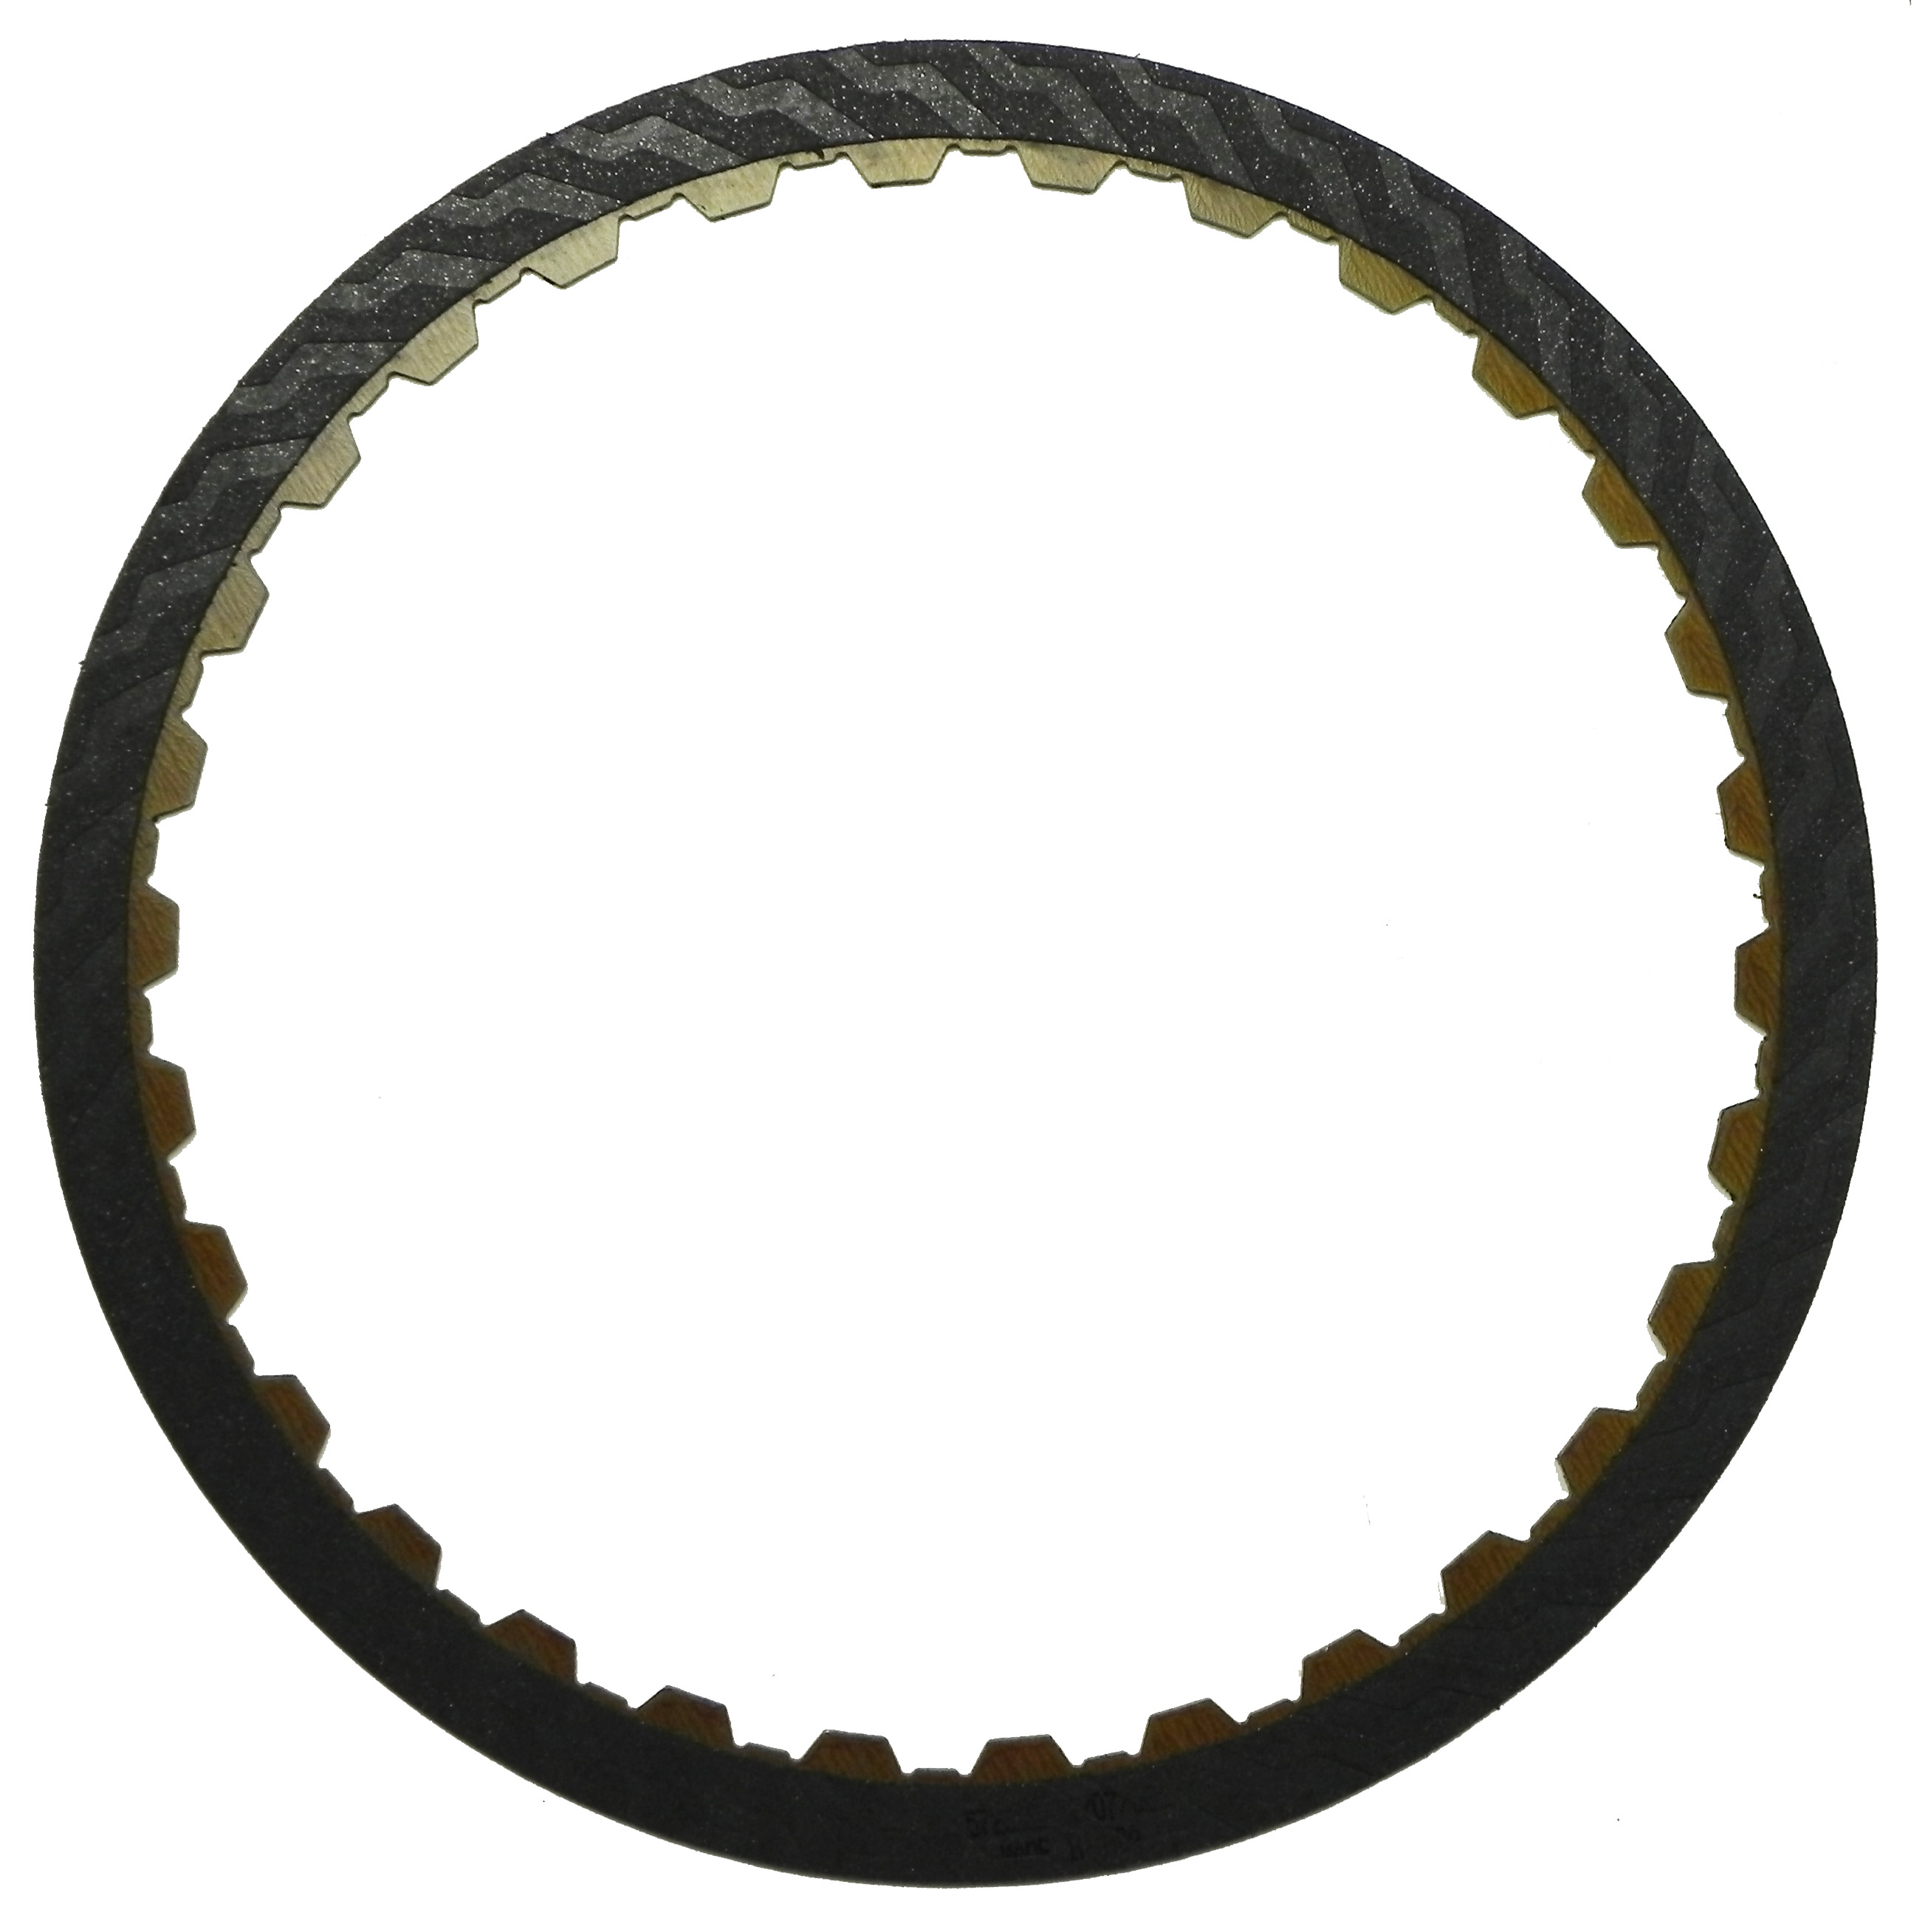 R572640 | 1996-ON Friction Clutch Plate High Energy B1, K1 Single Sided, ID Spline High Energy